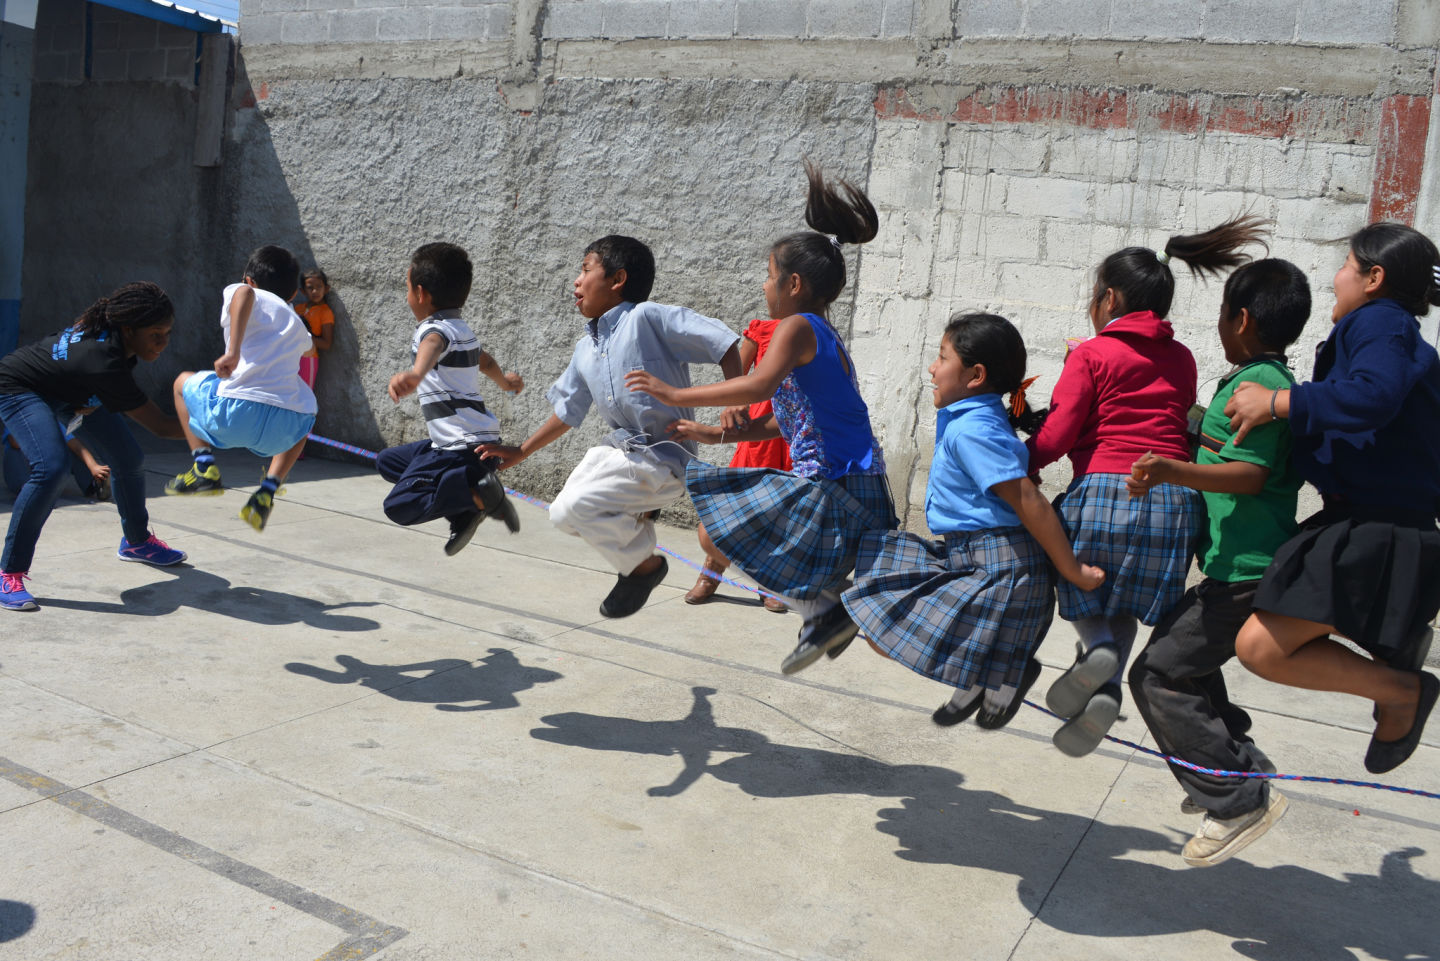 More Playtime! How Kids Succeed with Recess Four Times a Day at School